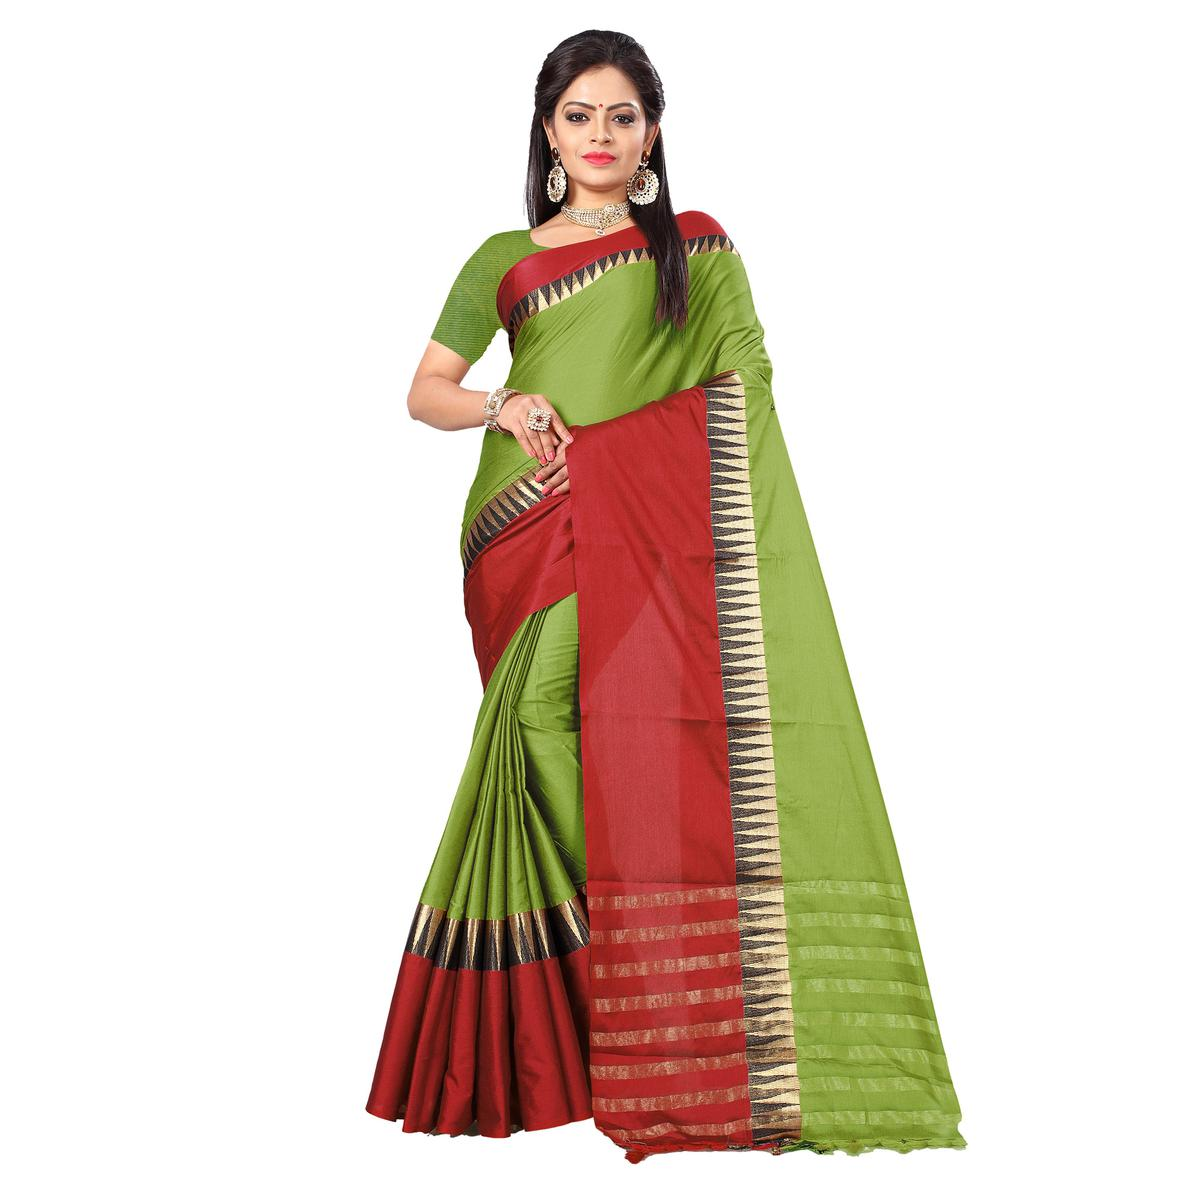 Graceful Green-Red Colored Festive Wear Cotton Silk Saree With Tassels